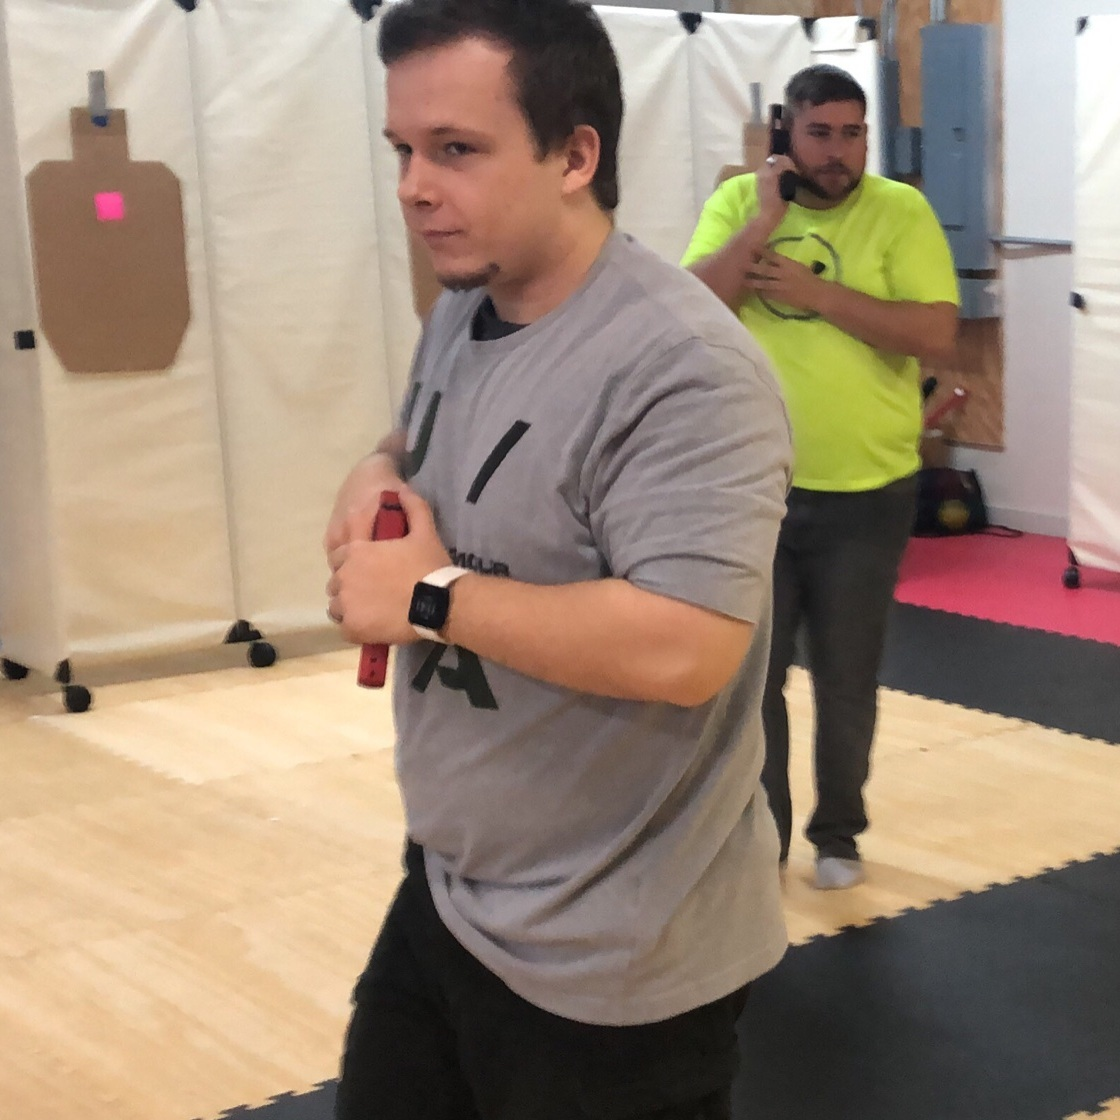 Concealed Firearms Training - The next level of training after your concealed carry permit.